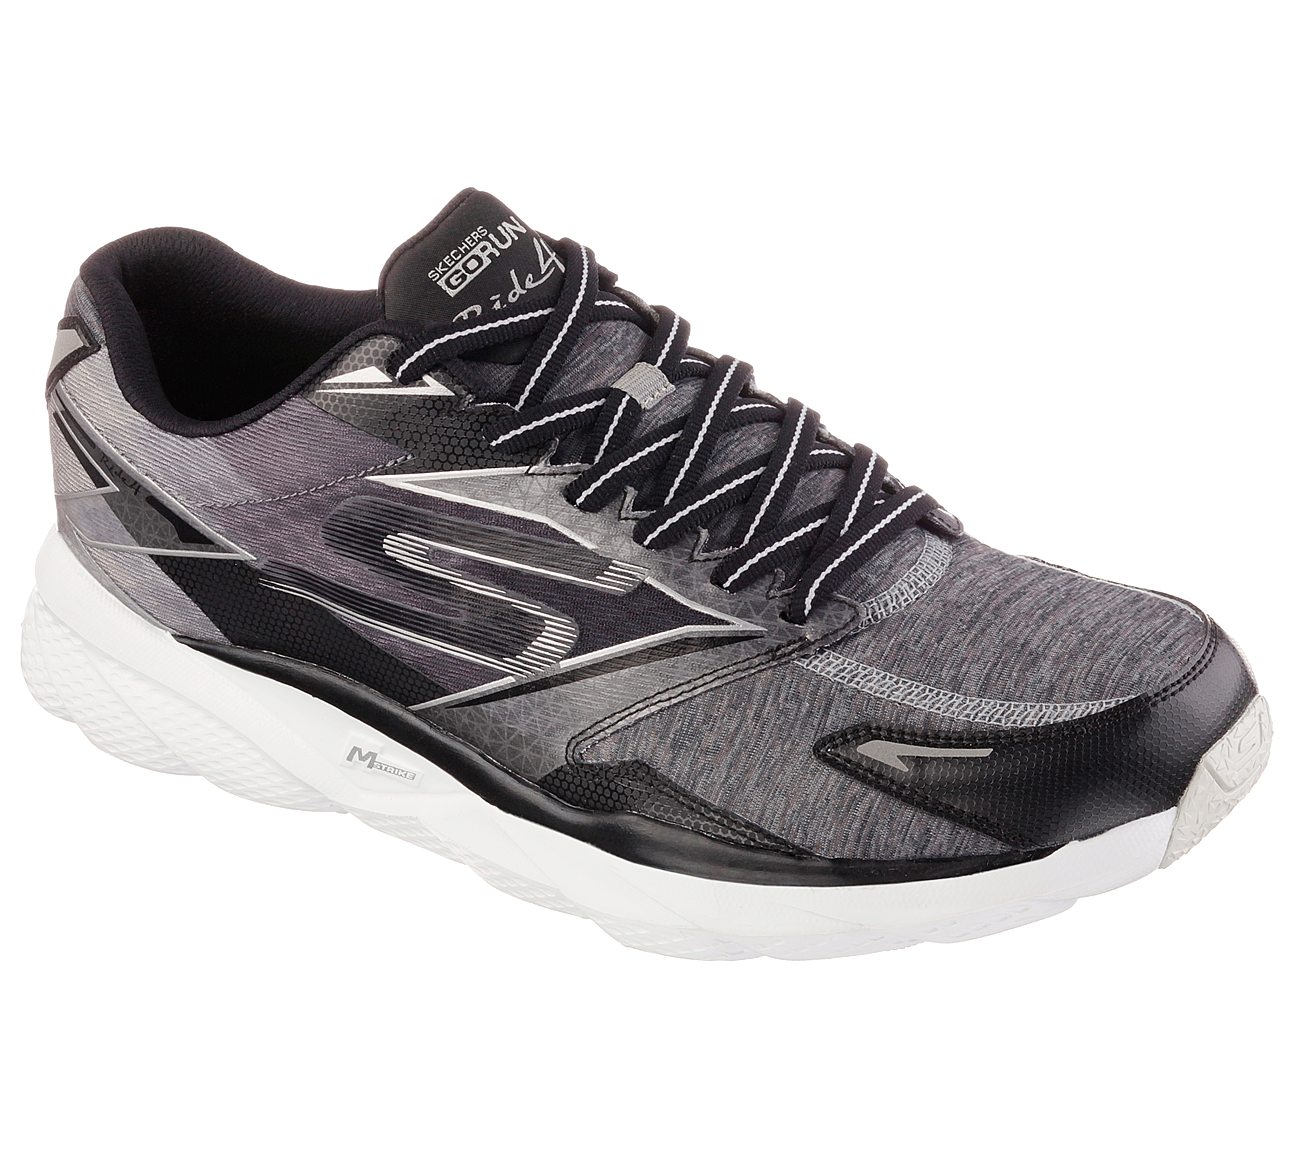 Buy SKECHERS Skechers GOrun Ride 4